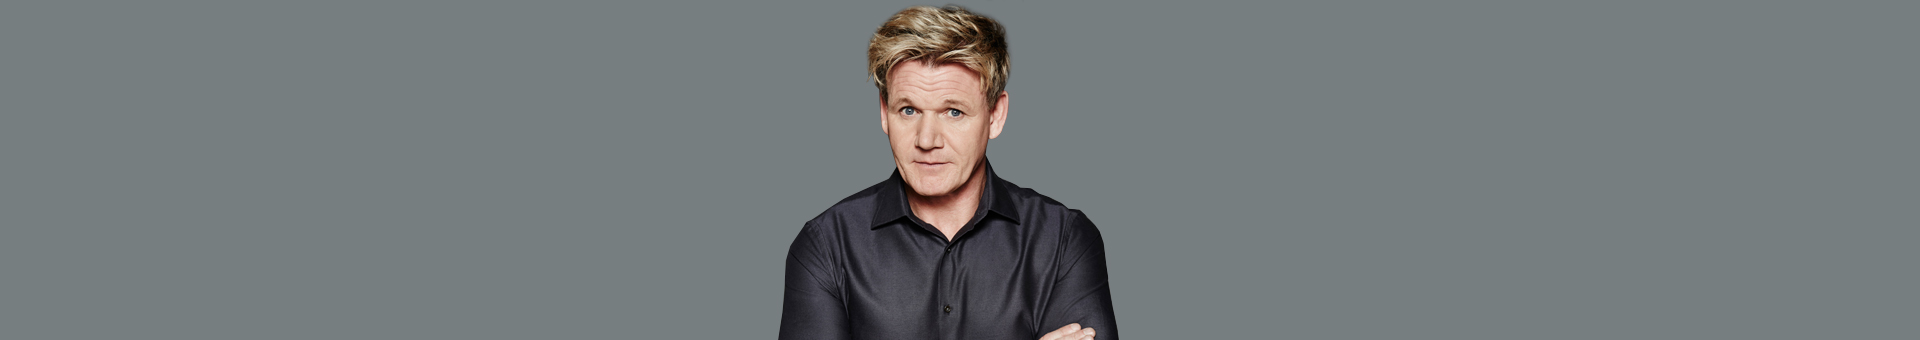 COVER. Gordon Ramsay